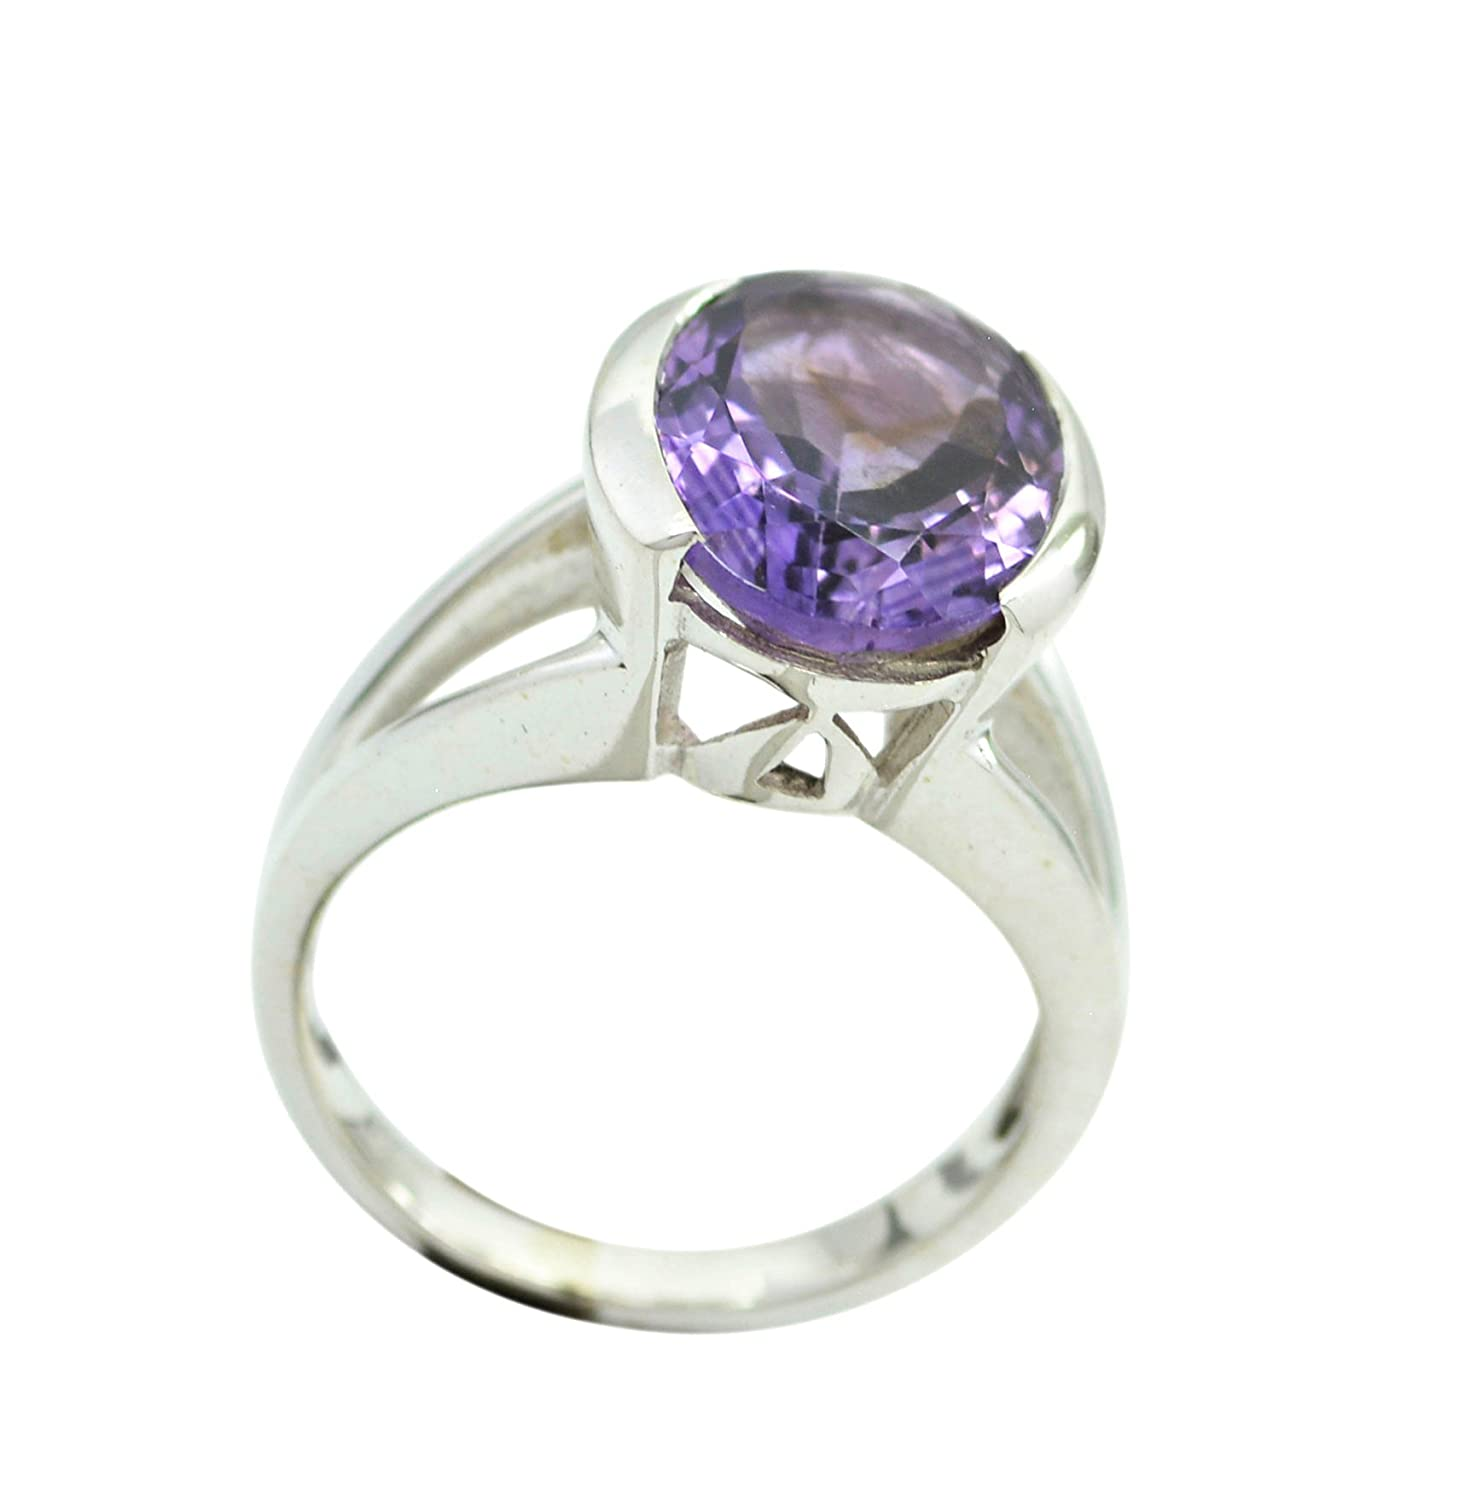 Amethyst Ring Vintage Style February Birthstone Healing Sterling Silver Jewelry Size 5,6,7,8,9,10,11,12